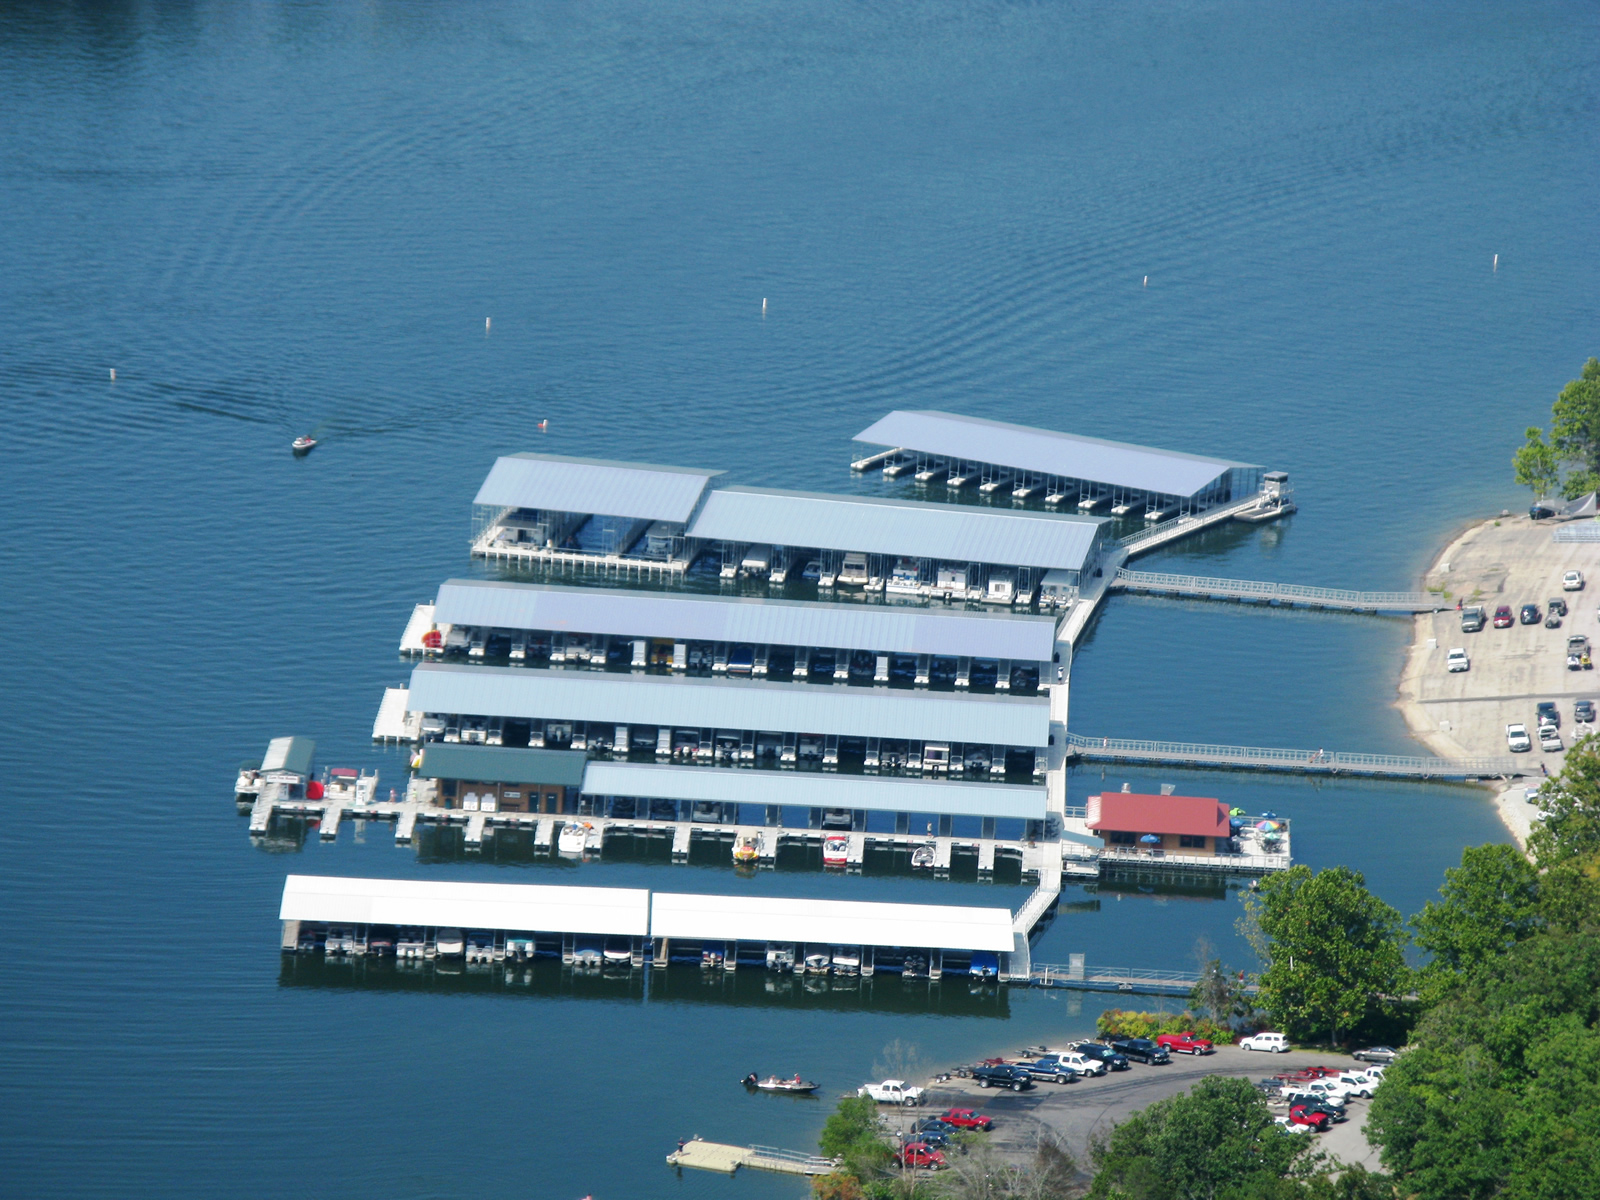 Aerial View of Cape Fair Marina on Table Rock Lake